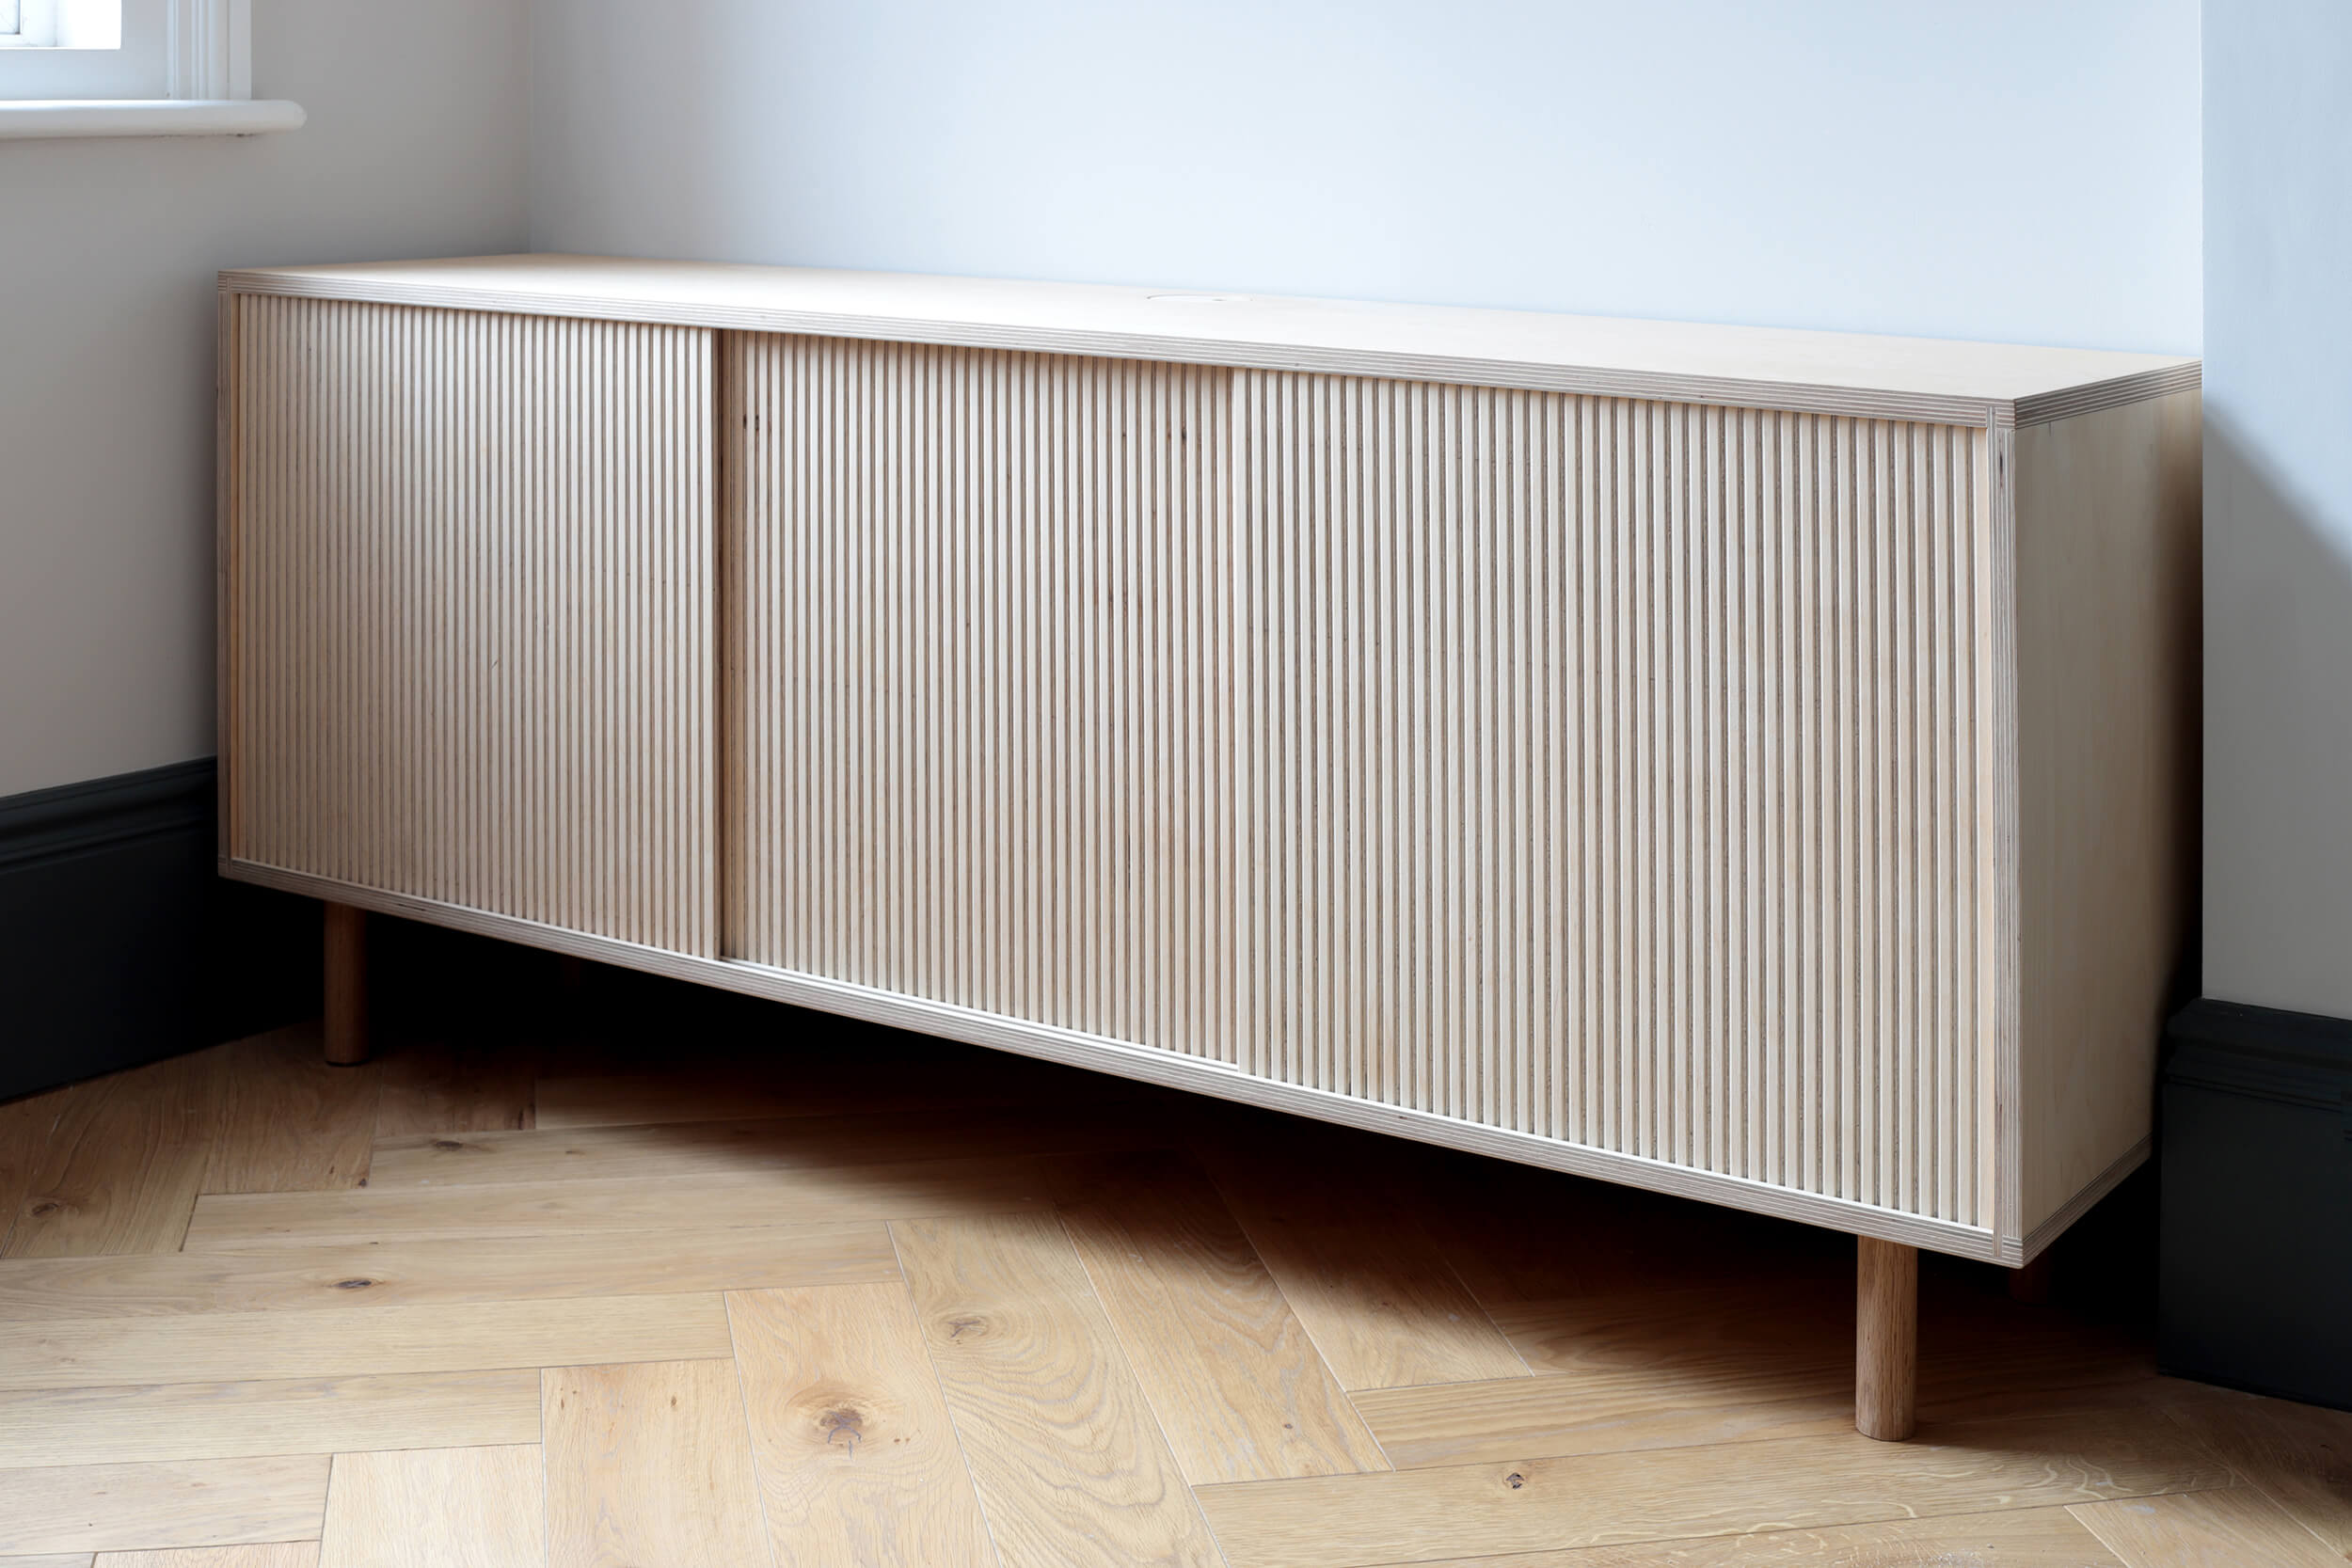 George and Grace's living room plywood sideboard storage by Lozi